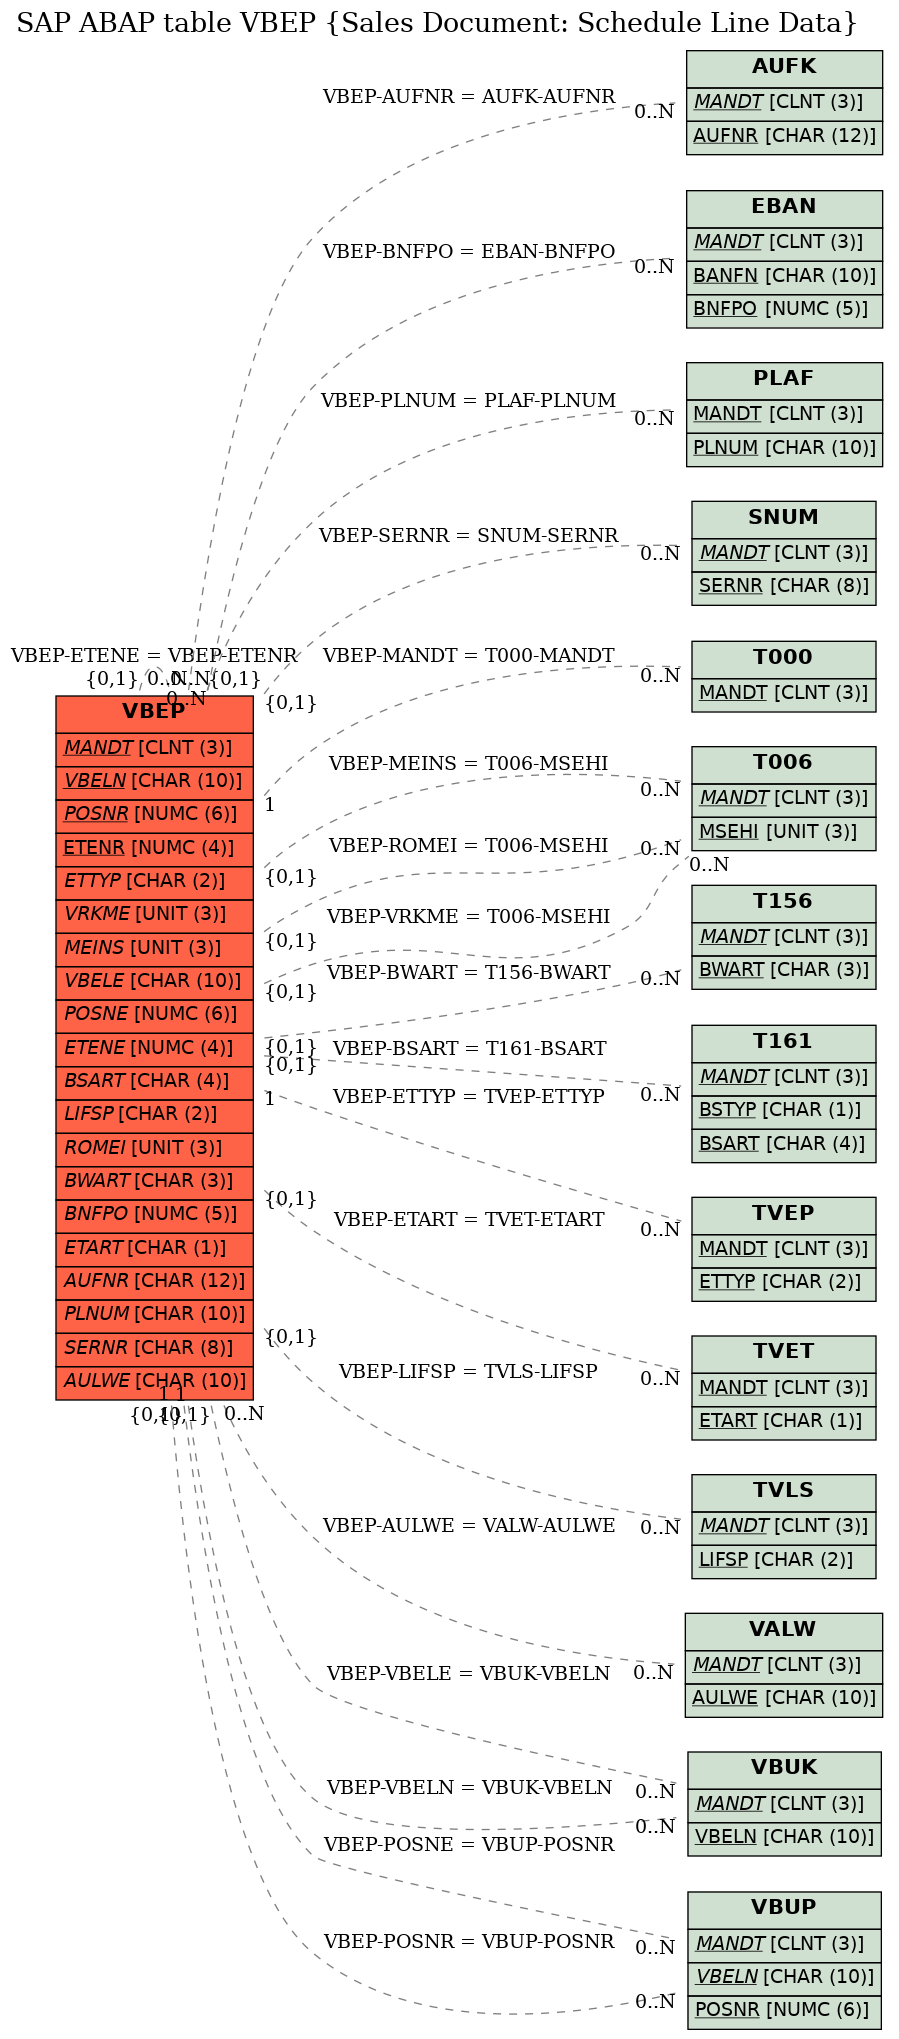 E-R Diagram for table VBEP (Sales Document: Schedule Line Data)